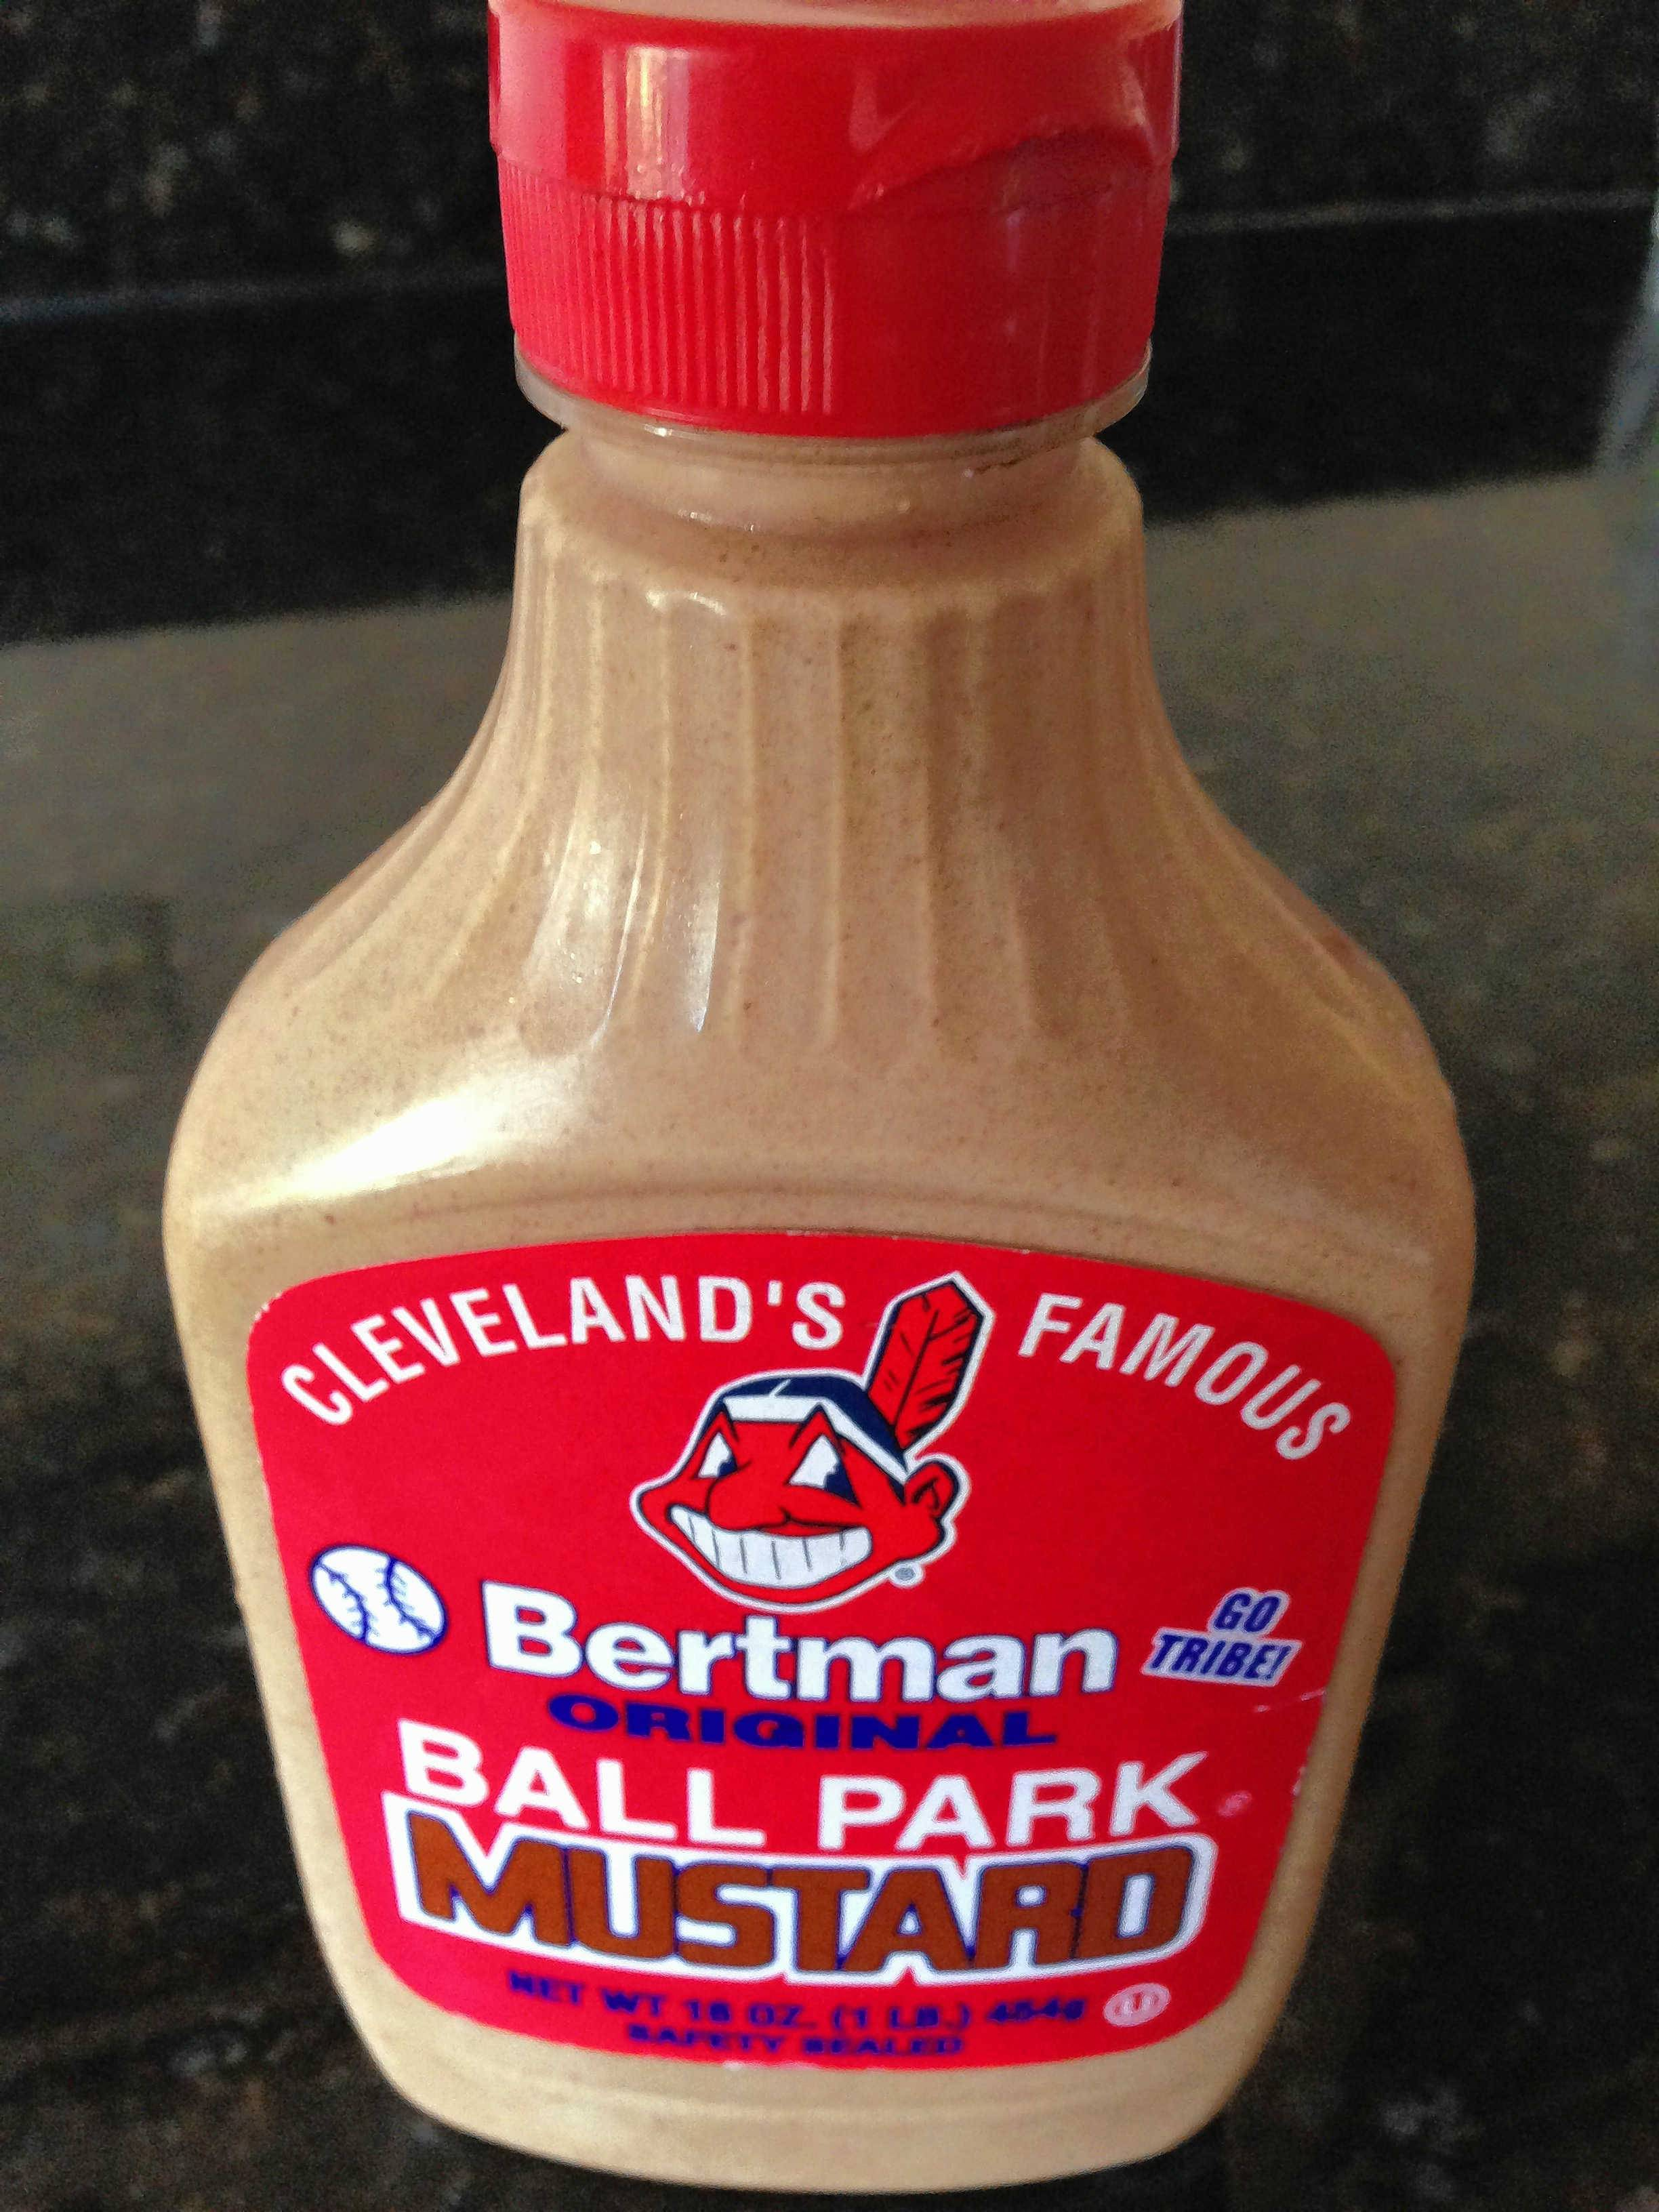 Bertman Original Ball Park Mustard has been part of Cleveland Indians baseball for about 90 years.